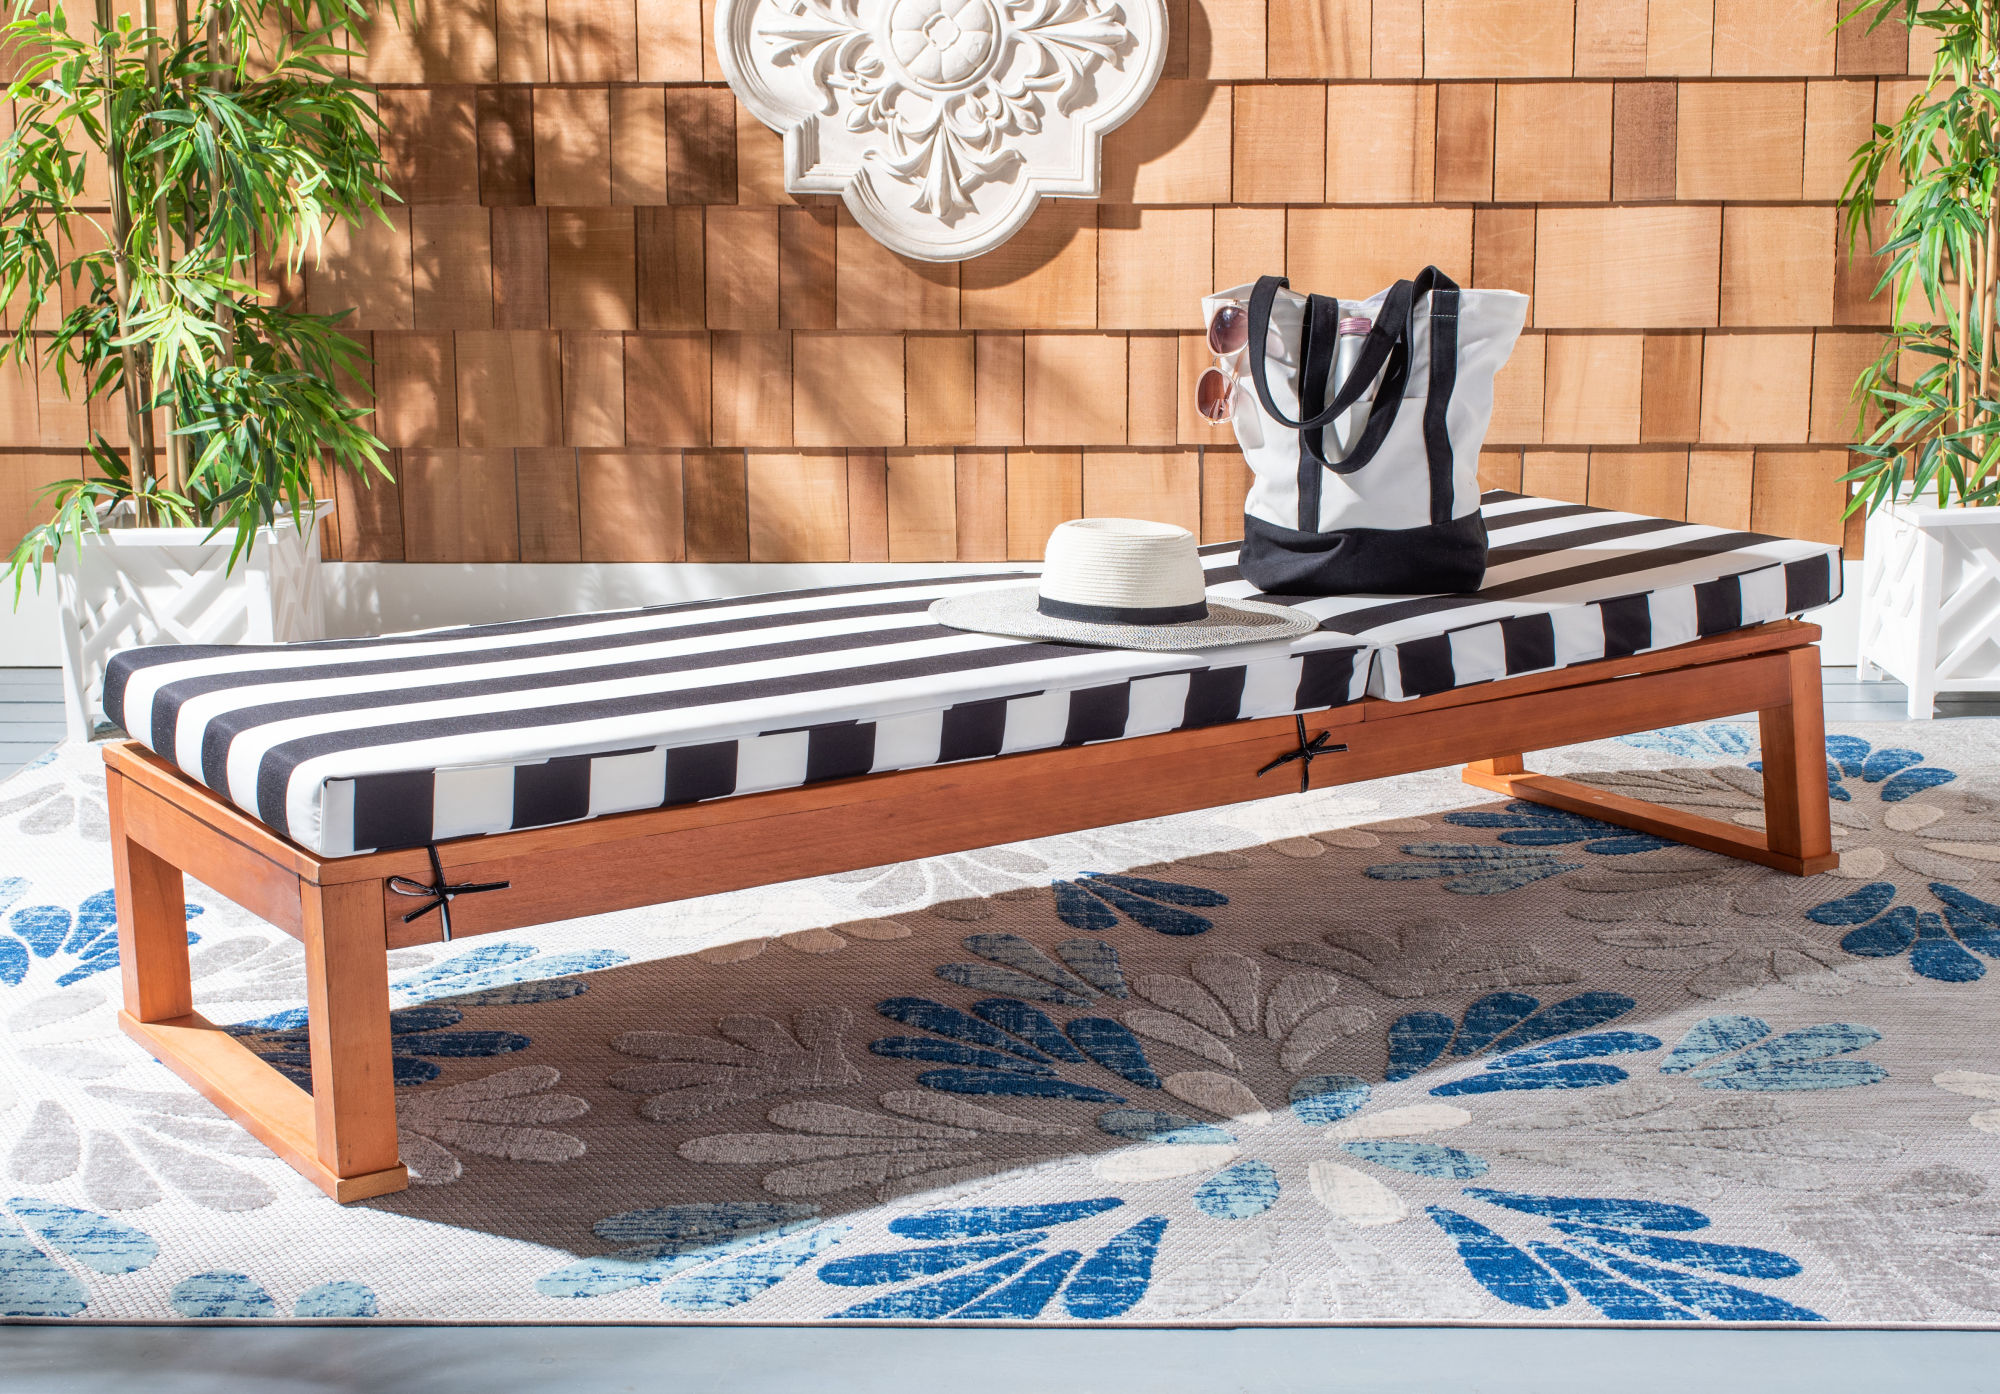 Solano Sunlounger on Safavieh Outdoor Living Solano Sunlounger id=50662